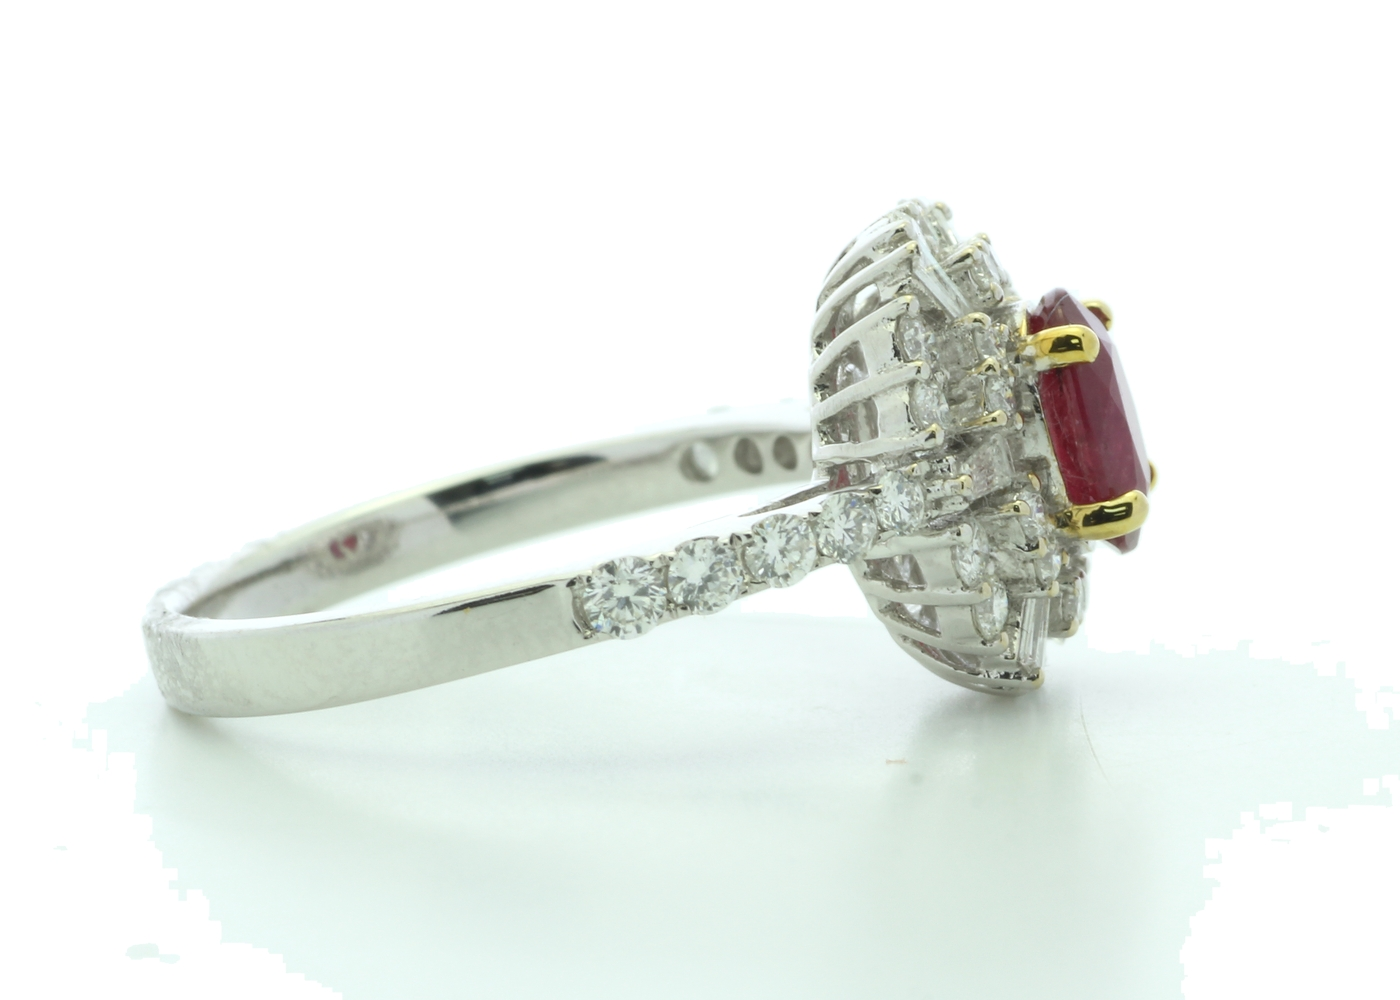 18k White Gold Cluster Diamond And Ruby Ring (R0.86) 0.80 Carats - Image 4 of 5